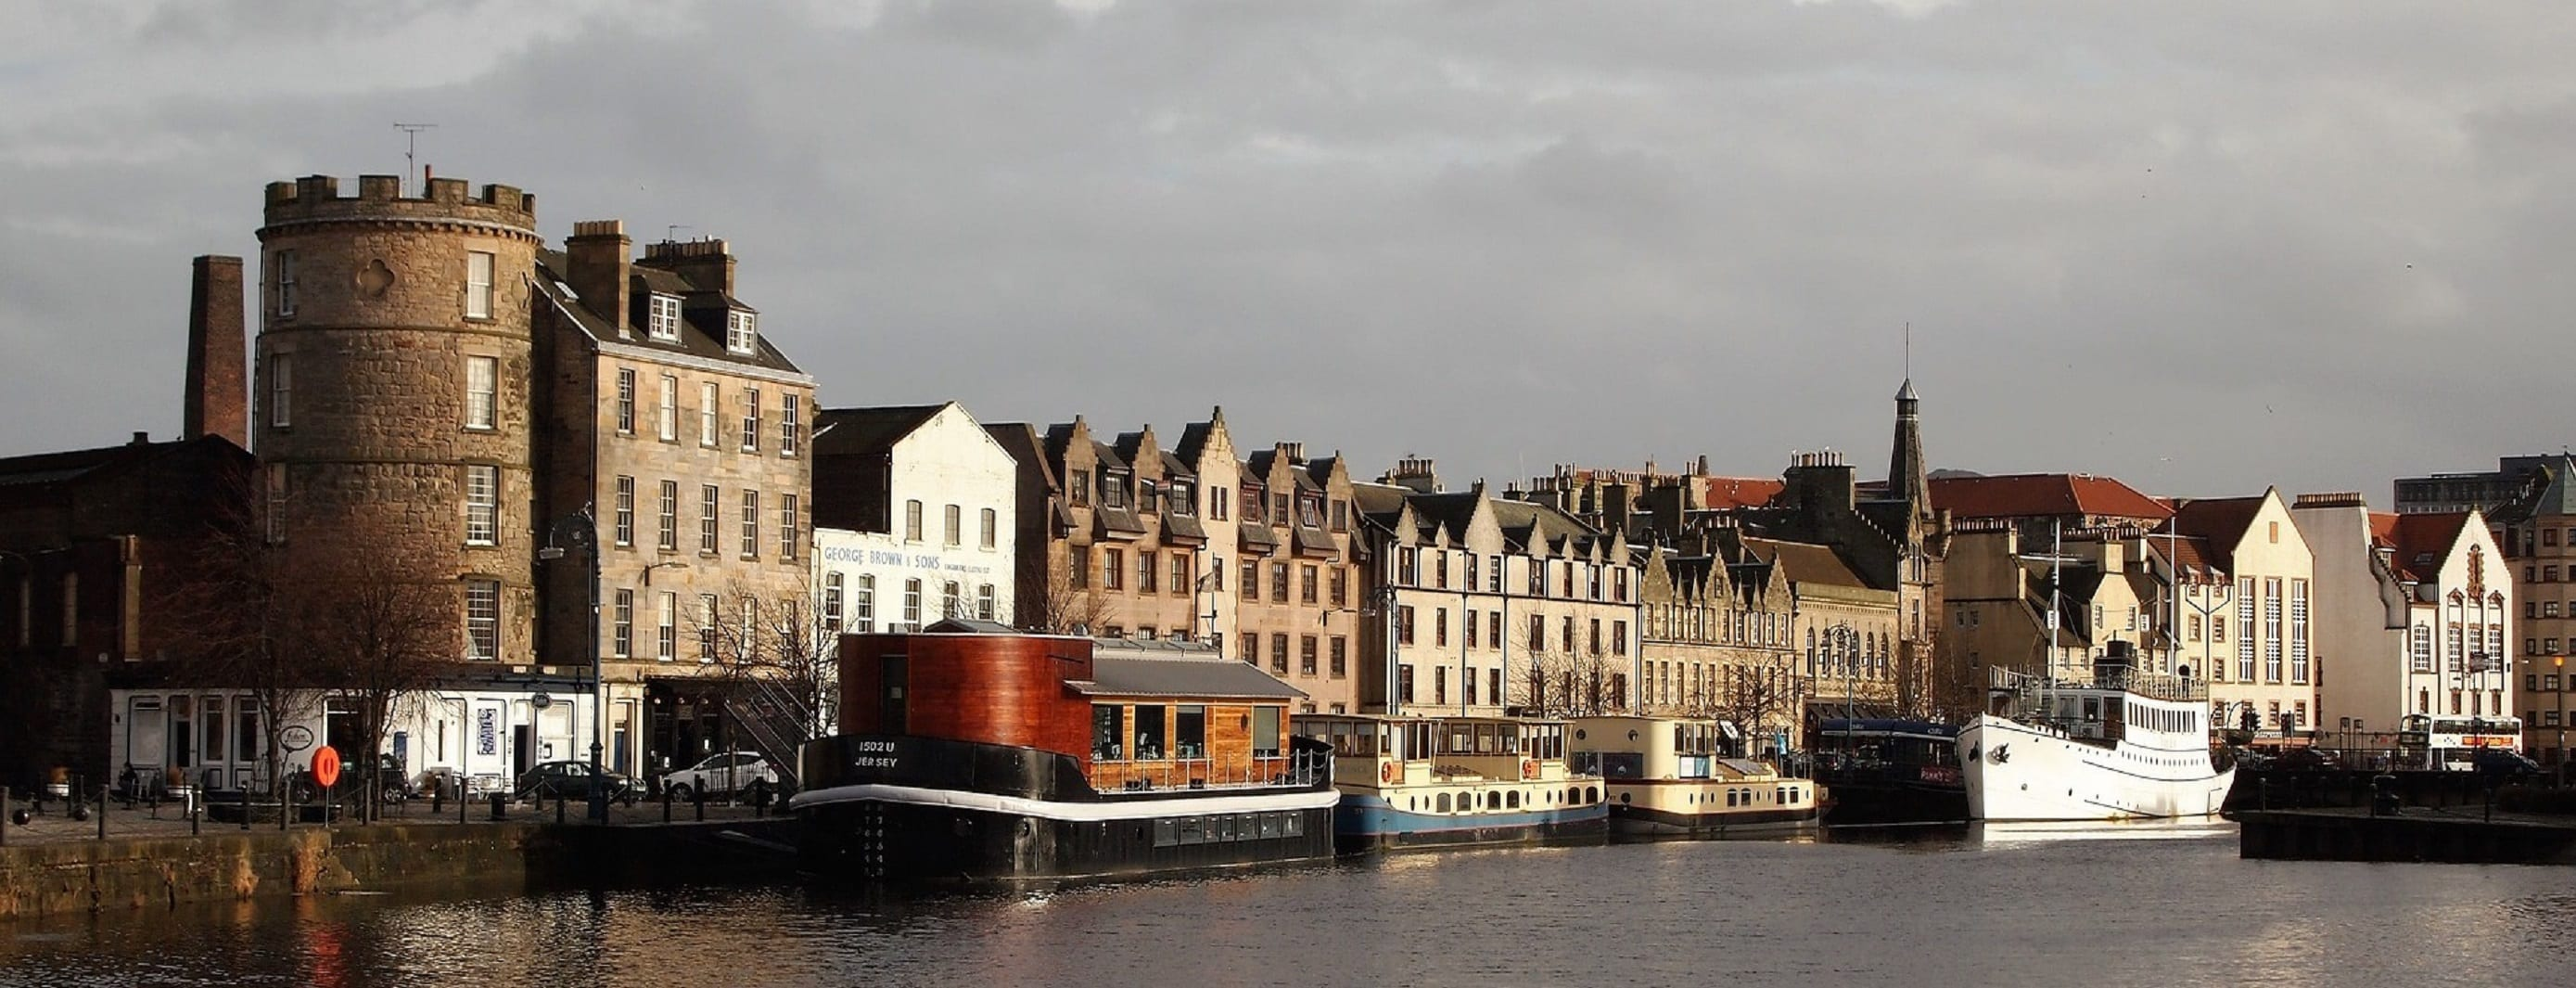 Buildings at The Shore, Leith